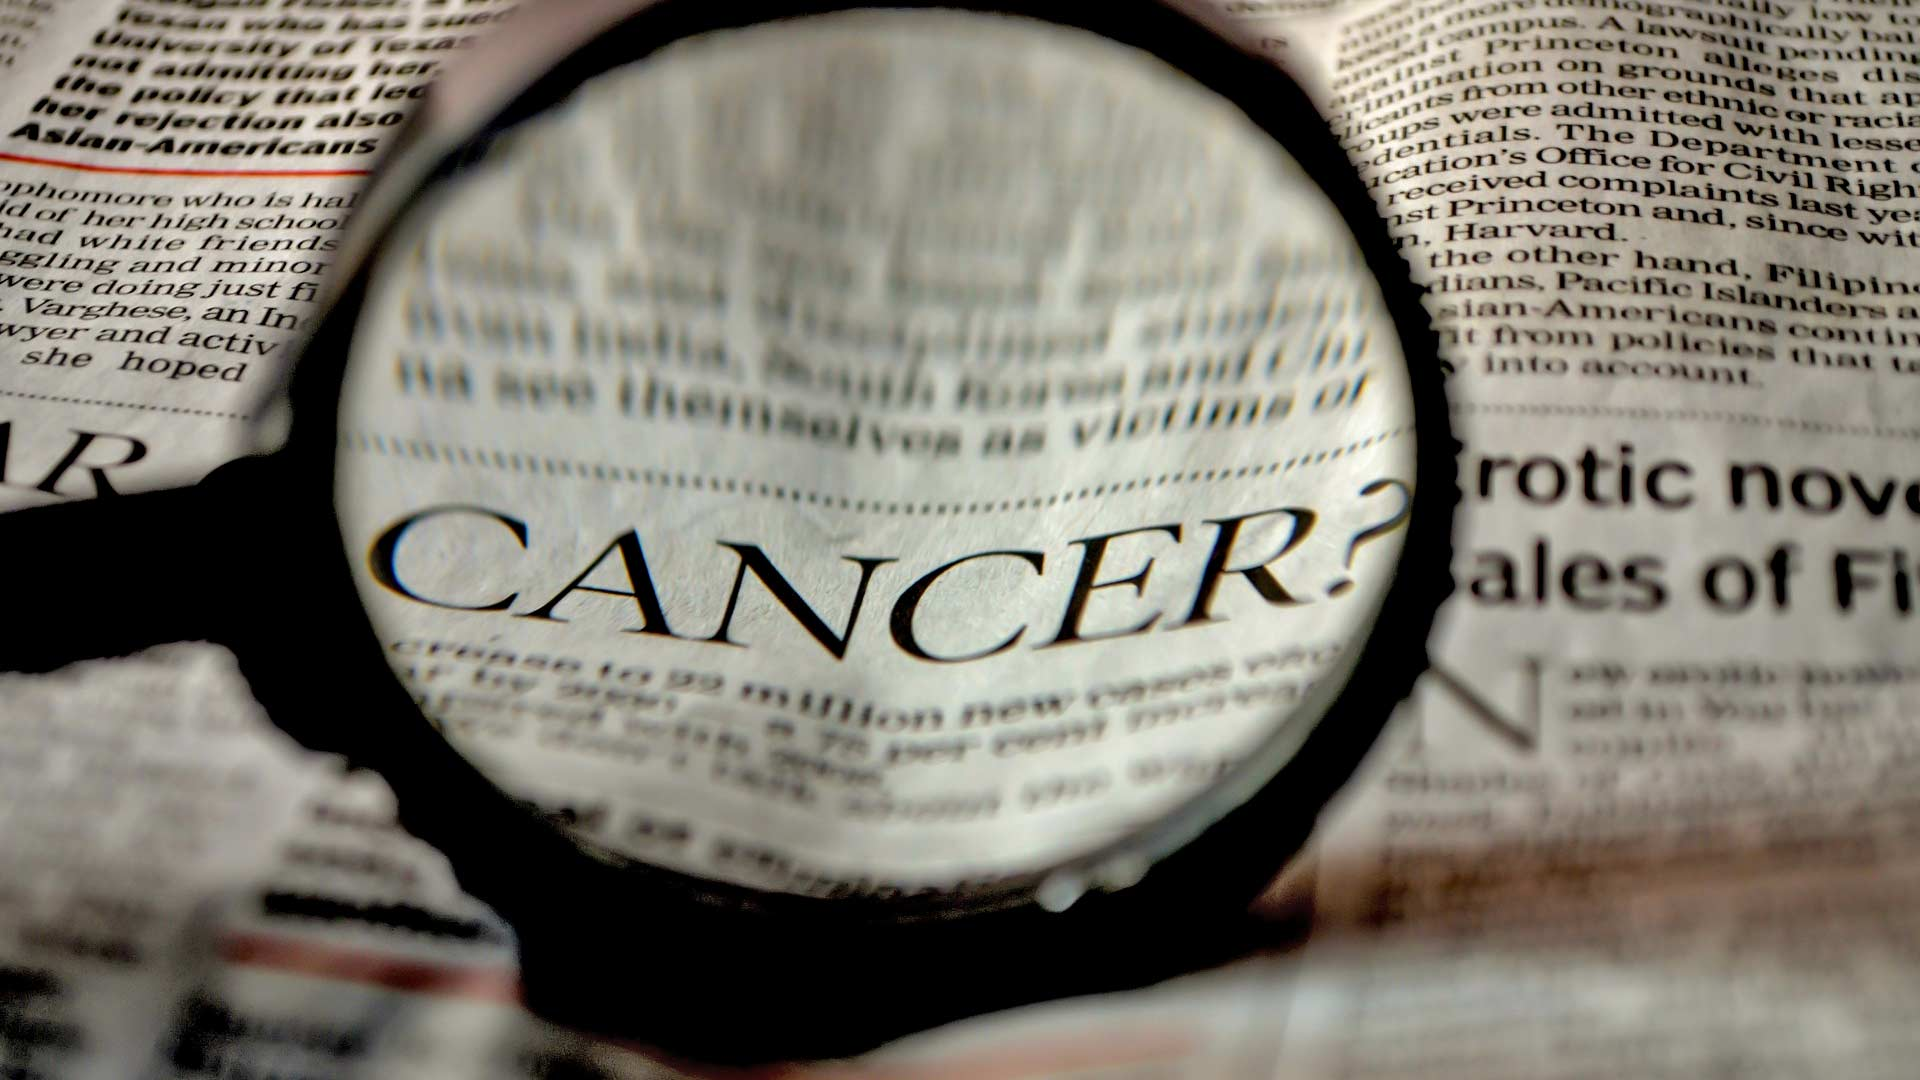 Cancer Symptoms And Causes: Getting the basics right